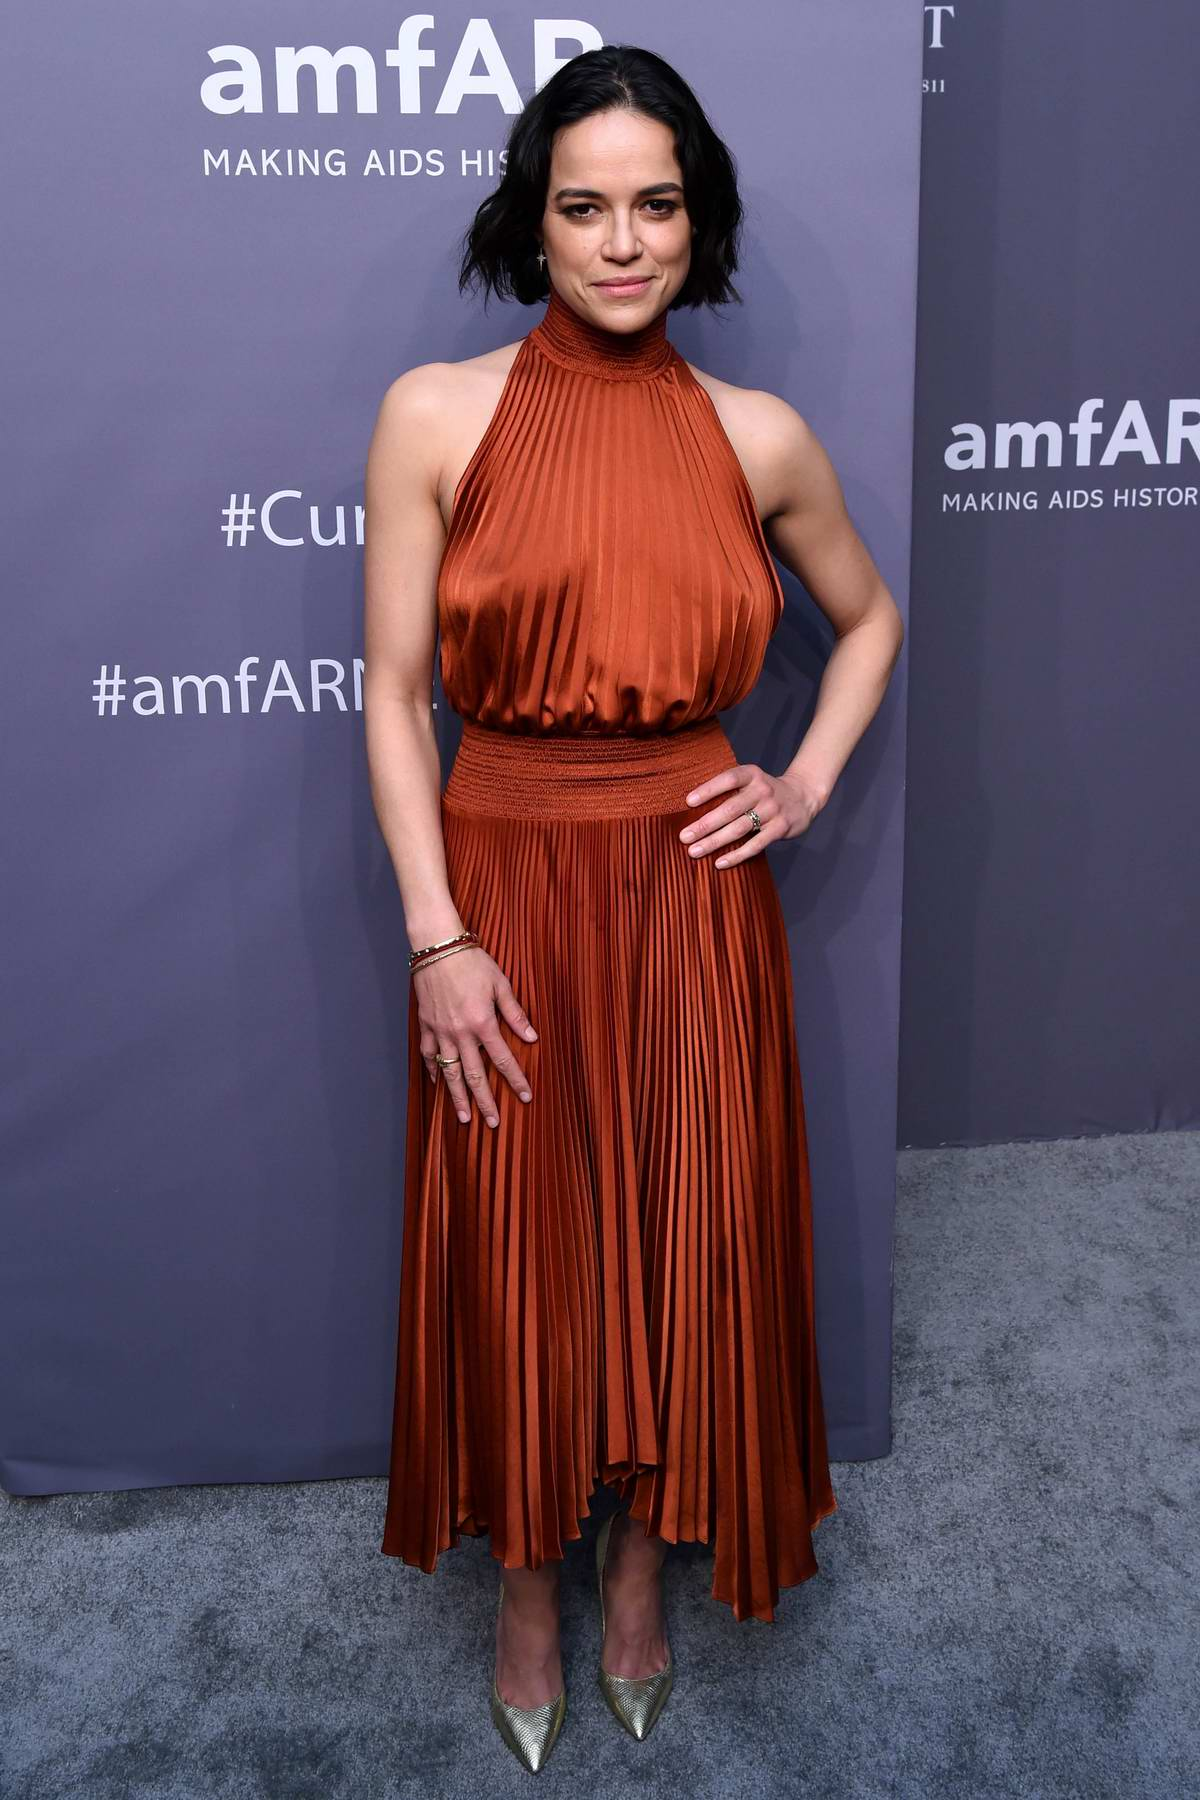 Michelle Rodriguez attends amfAR New York Gala 2019 at Cipriani Wall Street in New York City